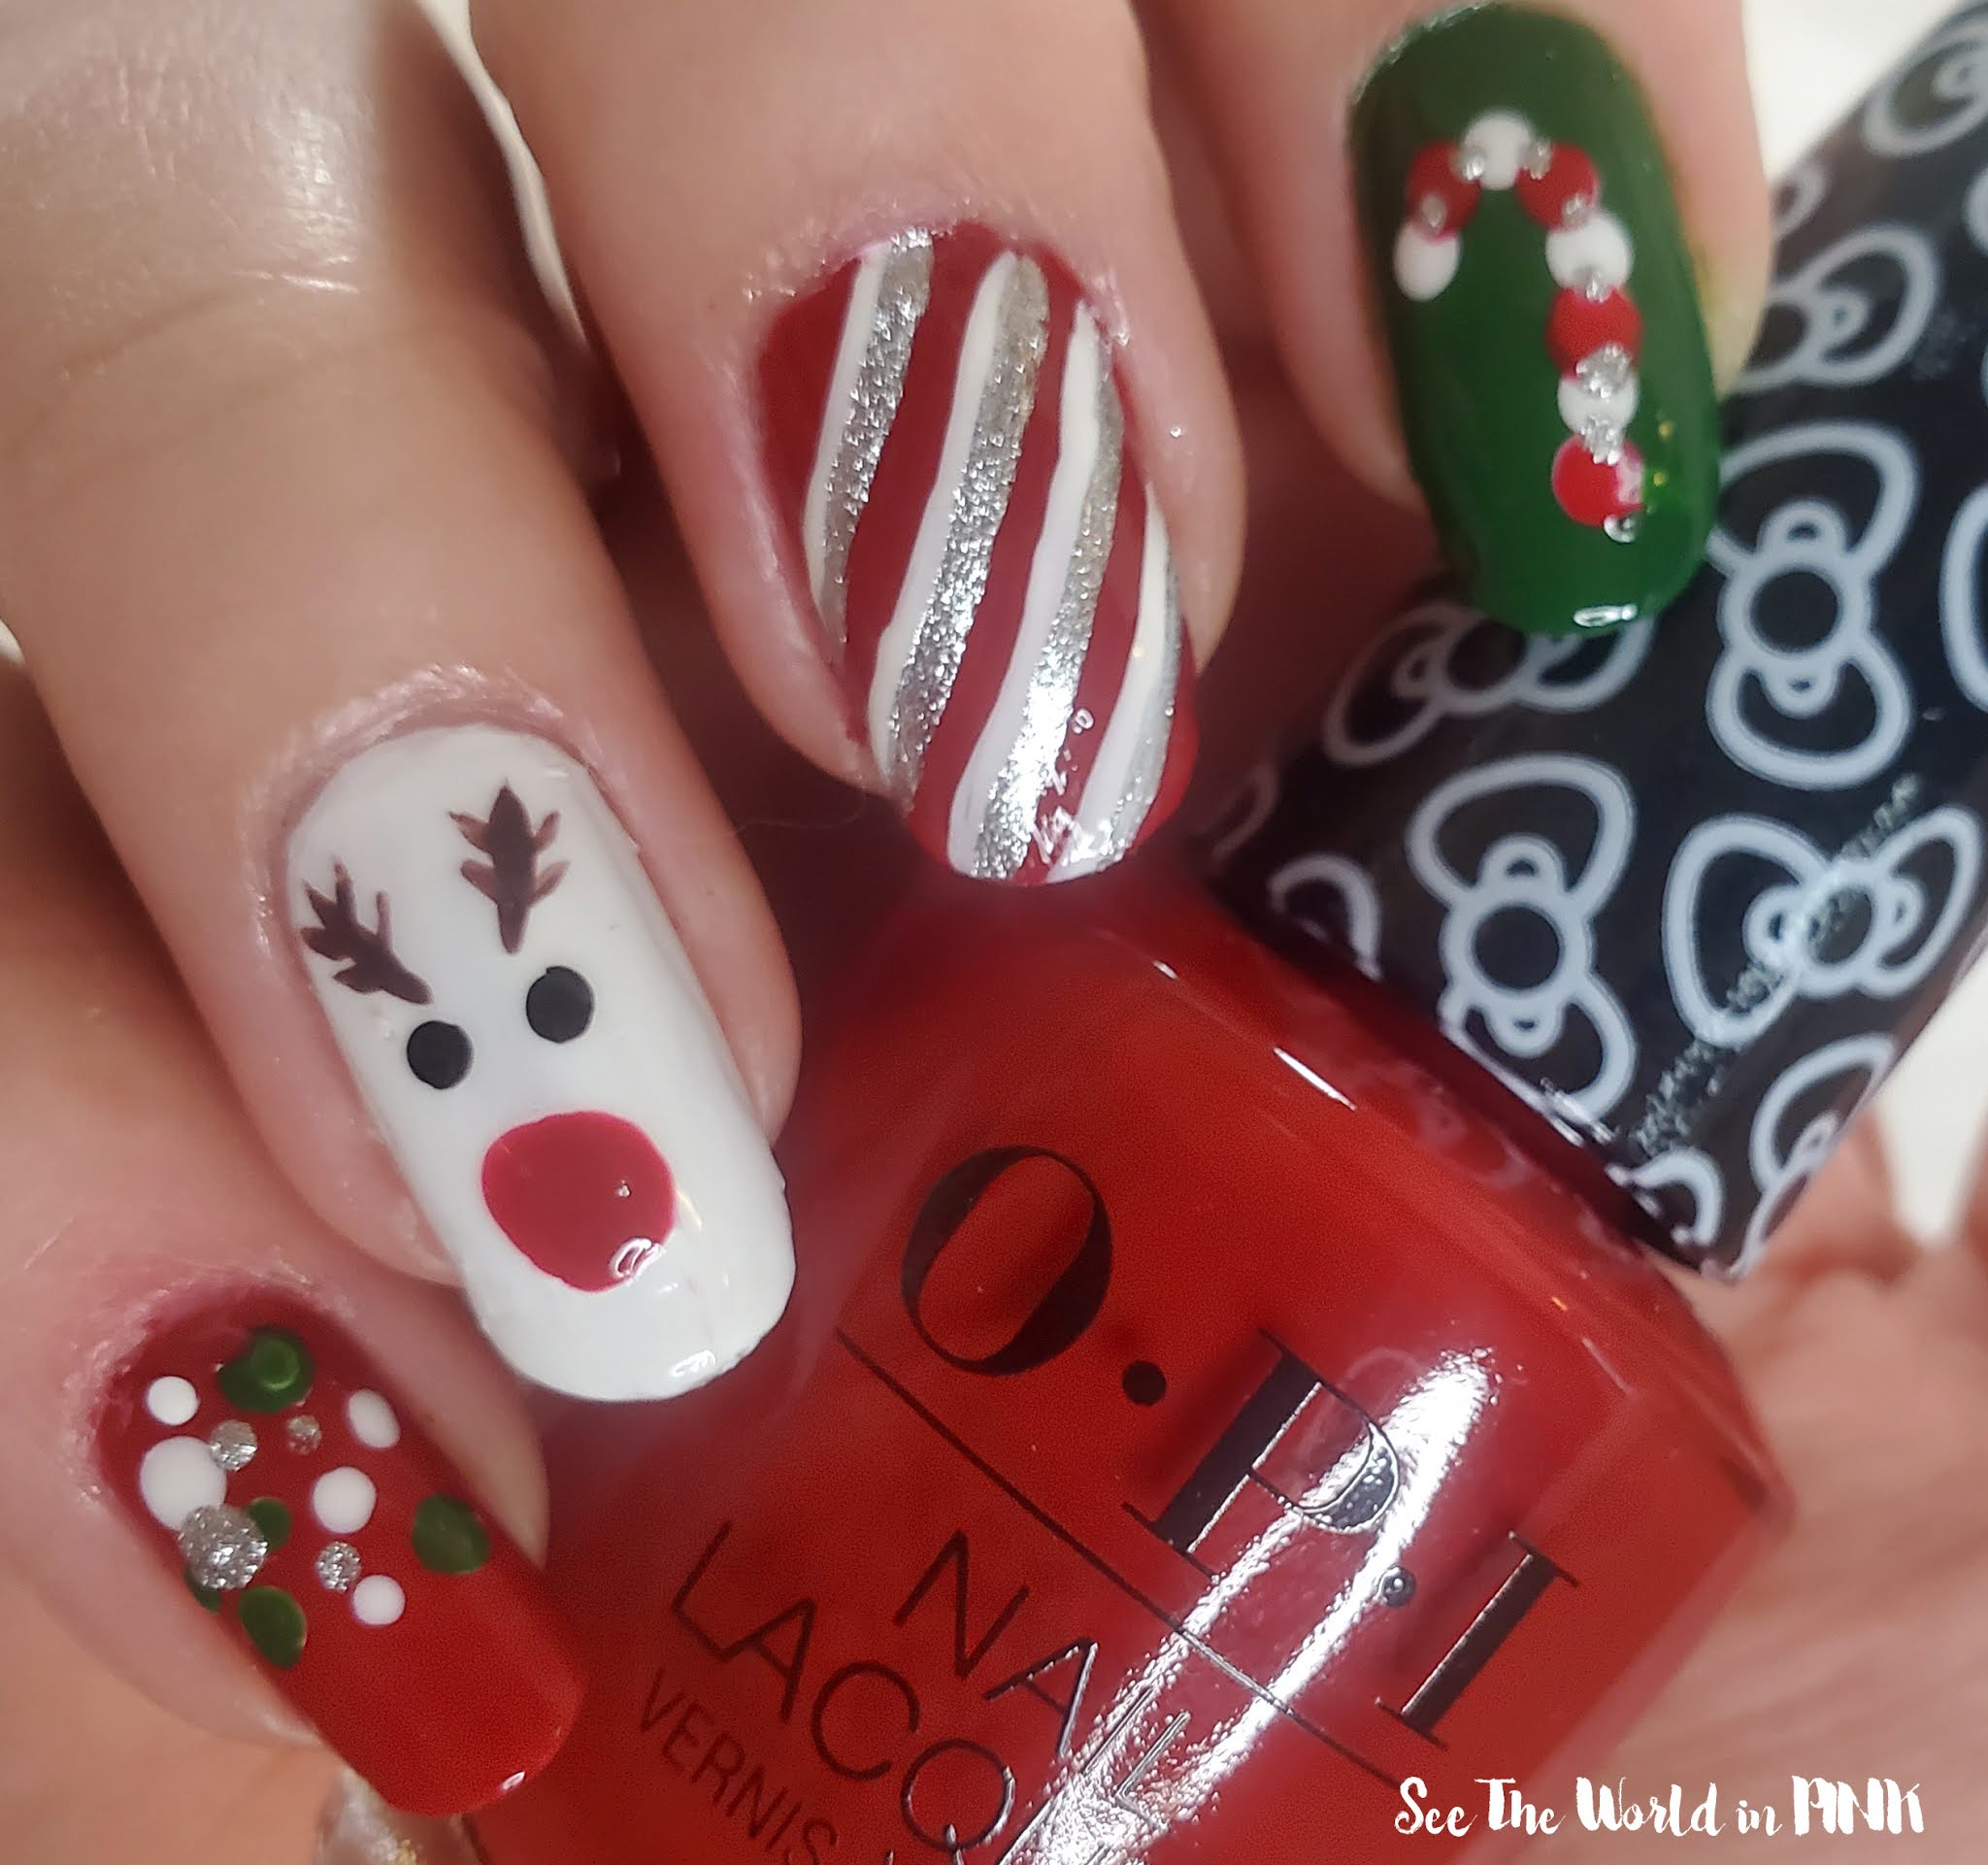 Manicure Monday - Christmas Reindeer Nails